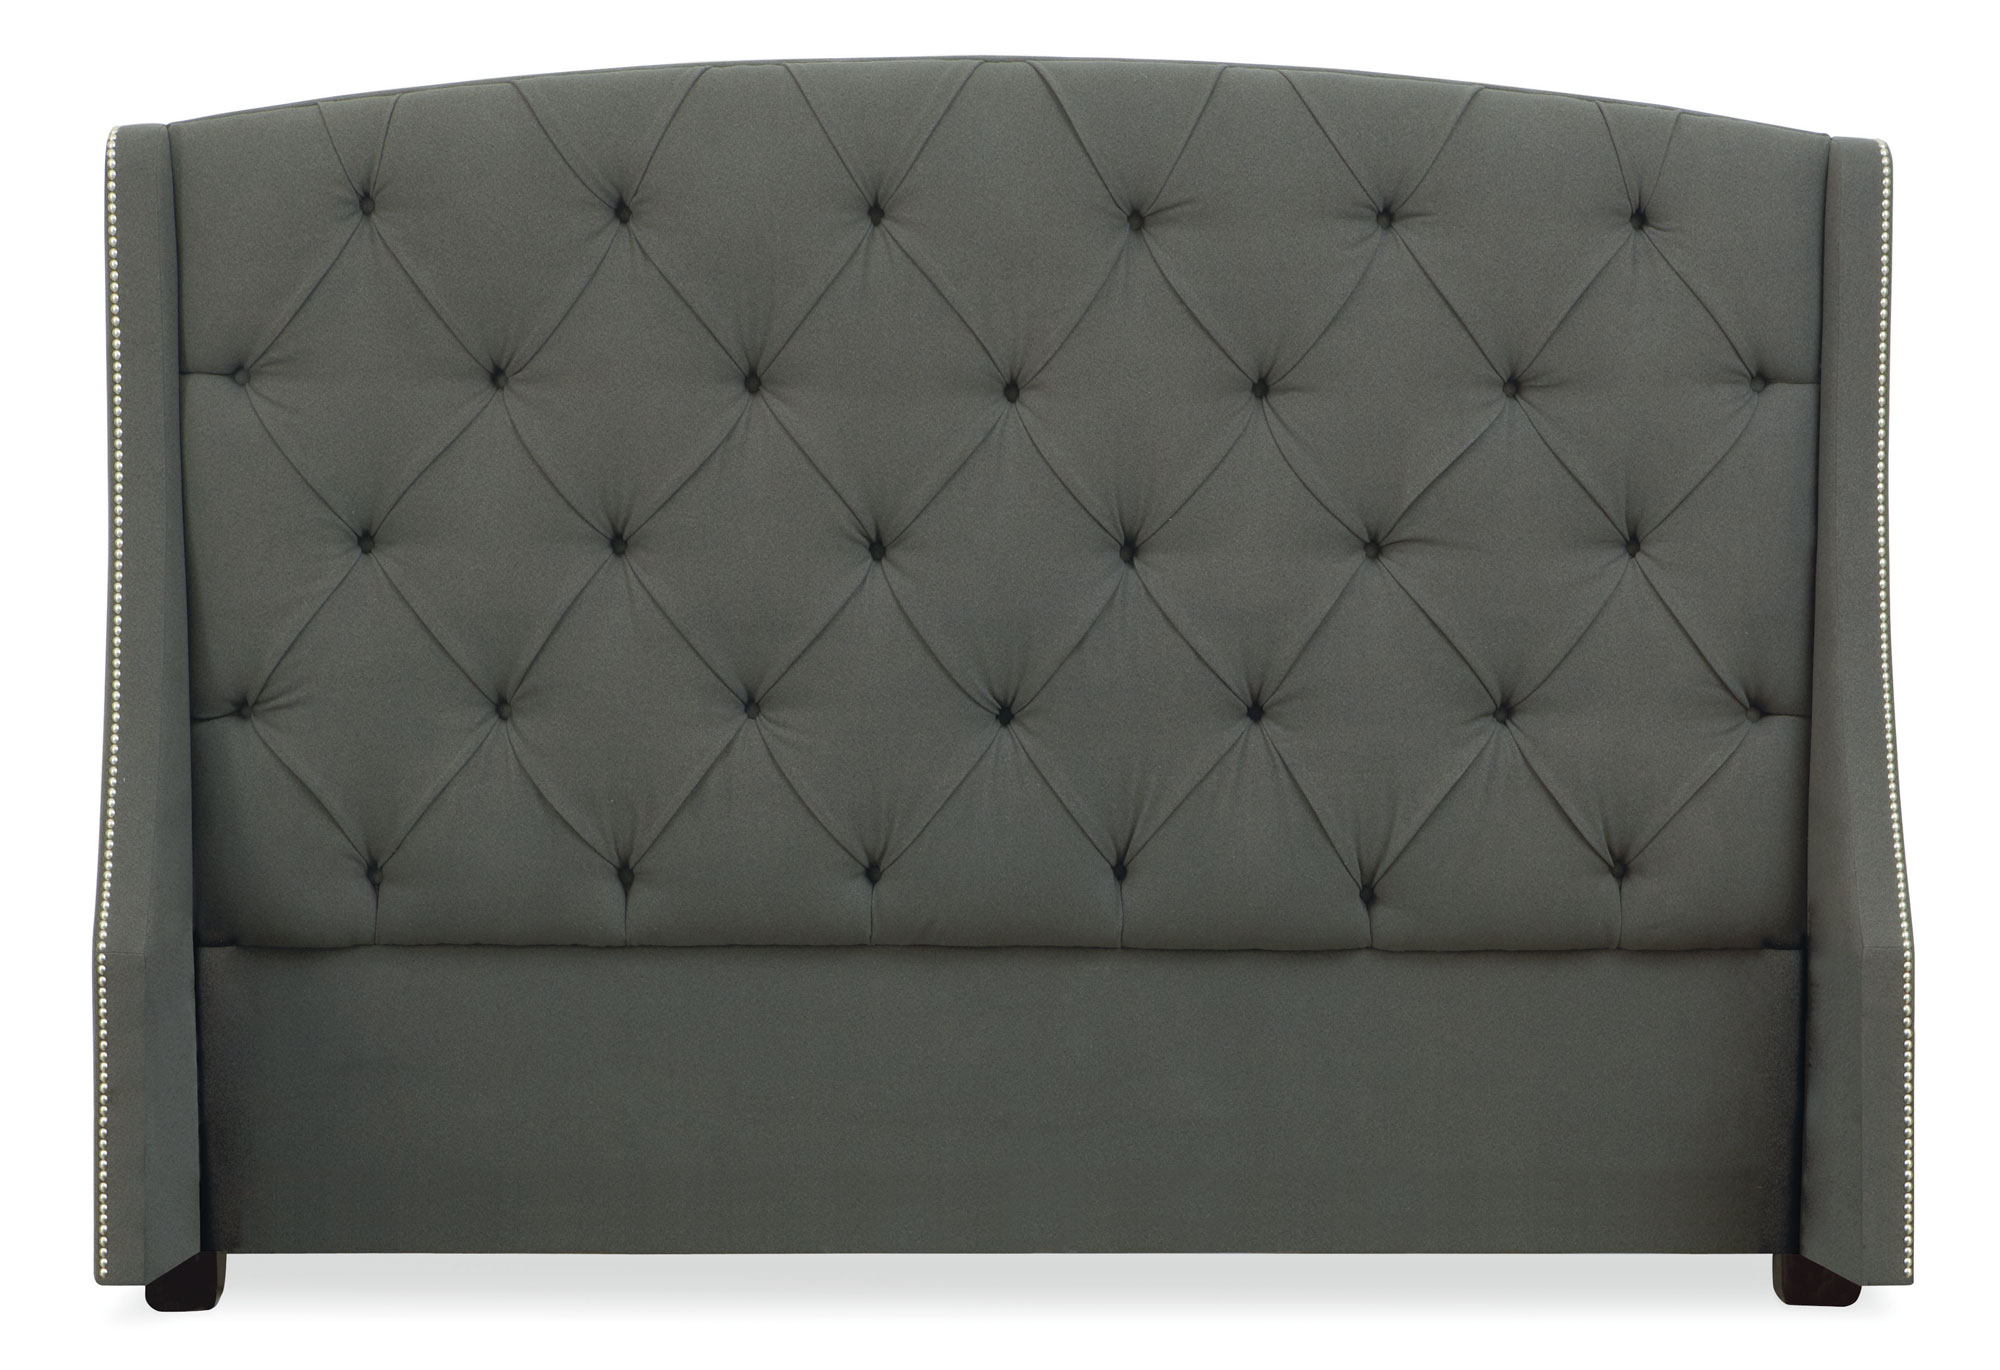 Wayfair Tufted Headboard Solid Tufted Dimensions Wood: Button Tufted Wing Headboard